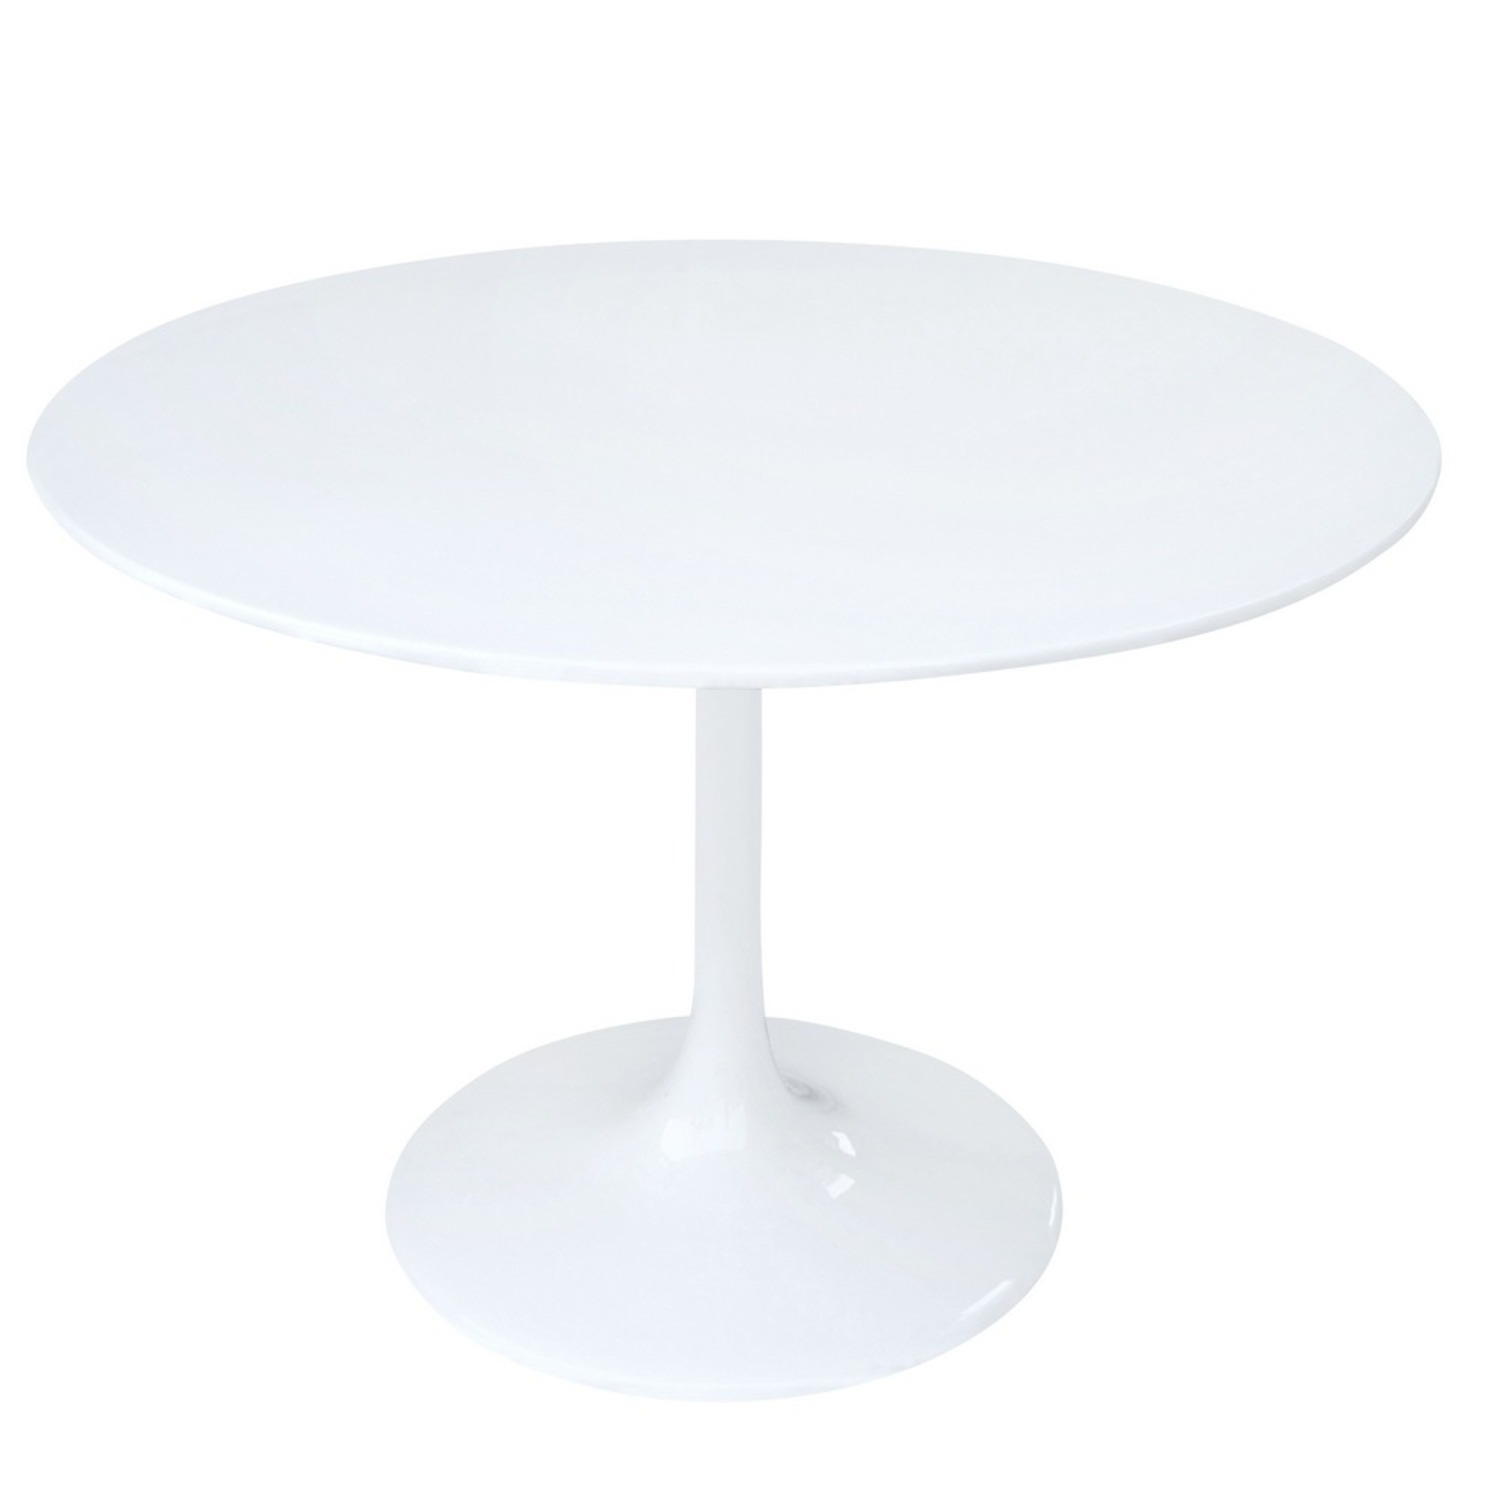 48-Inch Dining Table Molded In White Fiberglass - image-1